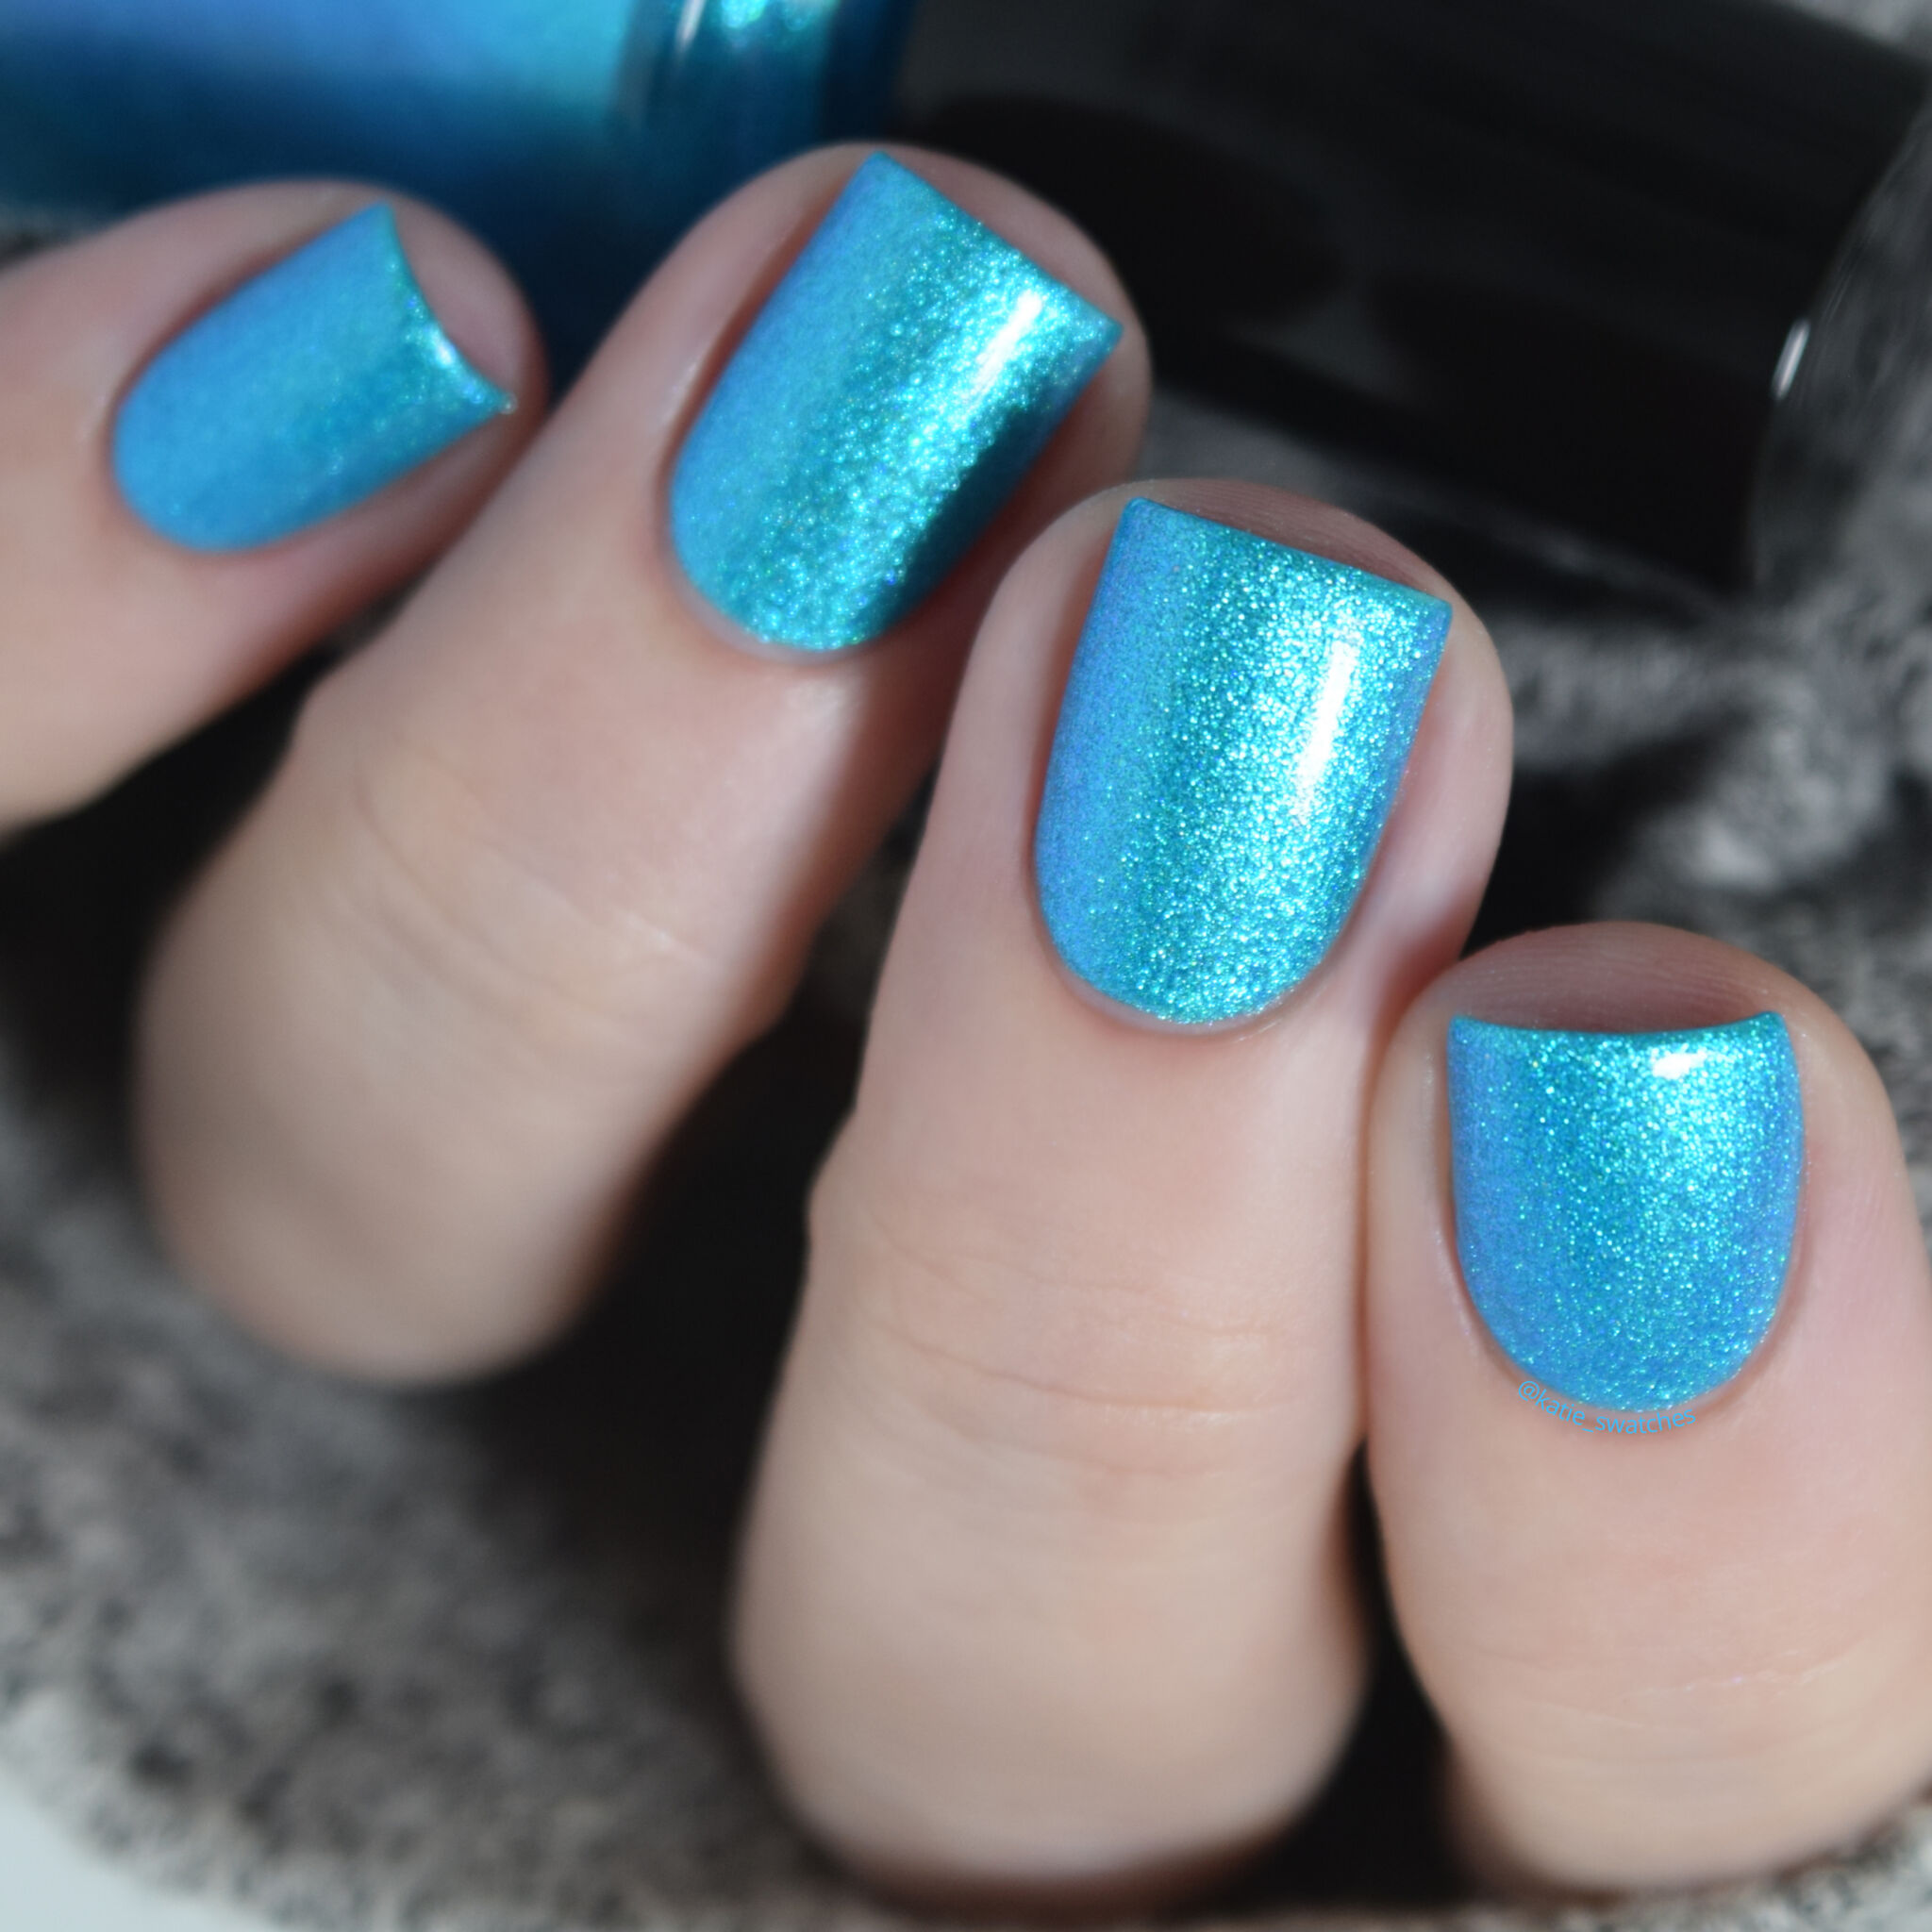 Girly Bits - Lorraine nail polish swatch, with top coat, from the Misheard Lyrics Collection. bright aqua/cyan blue nail polish with a blue/purple shimmer